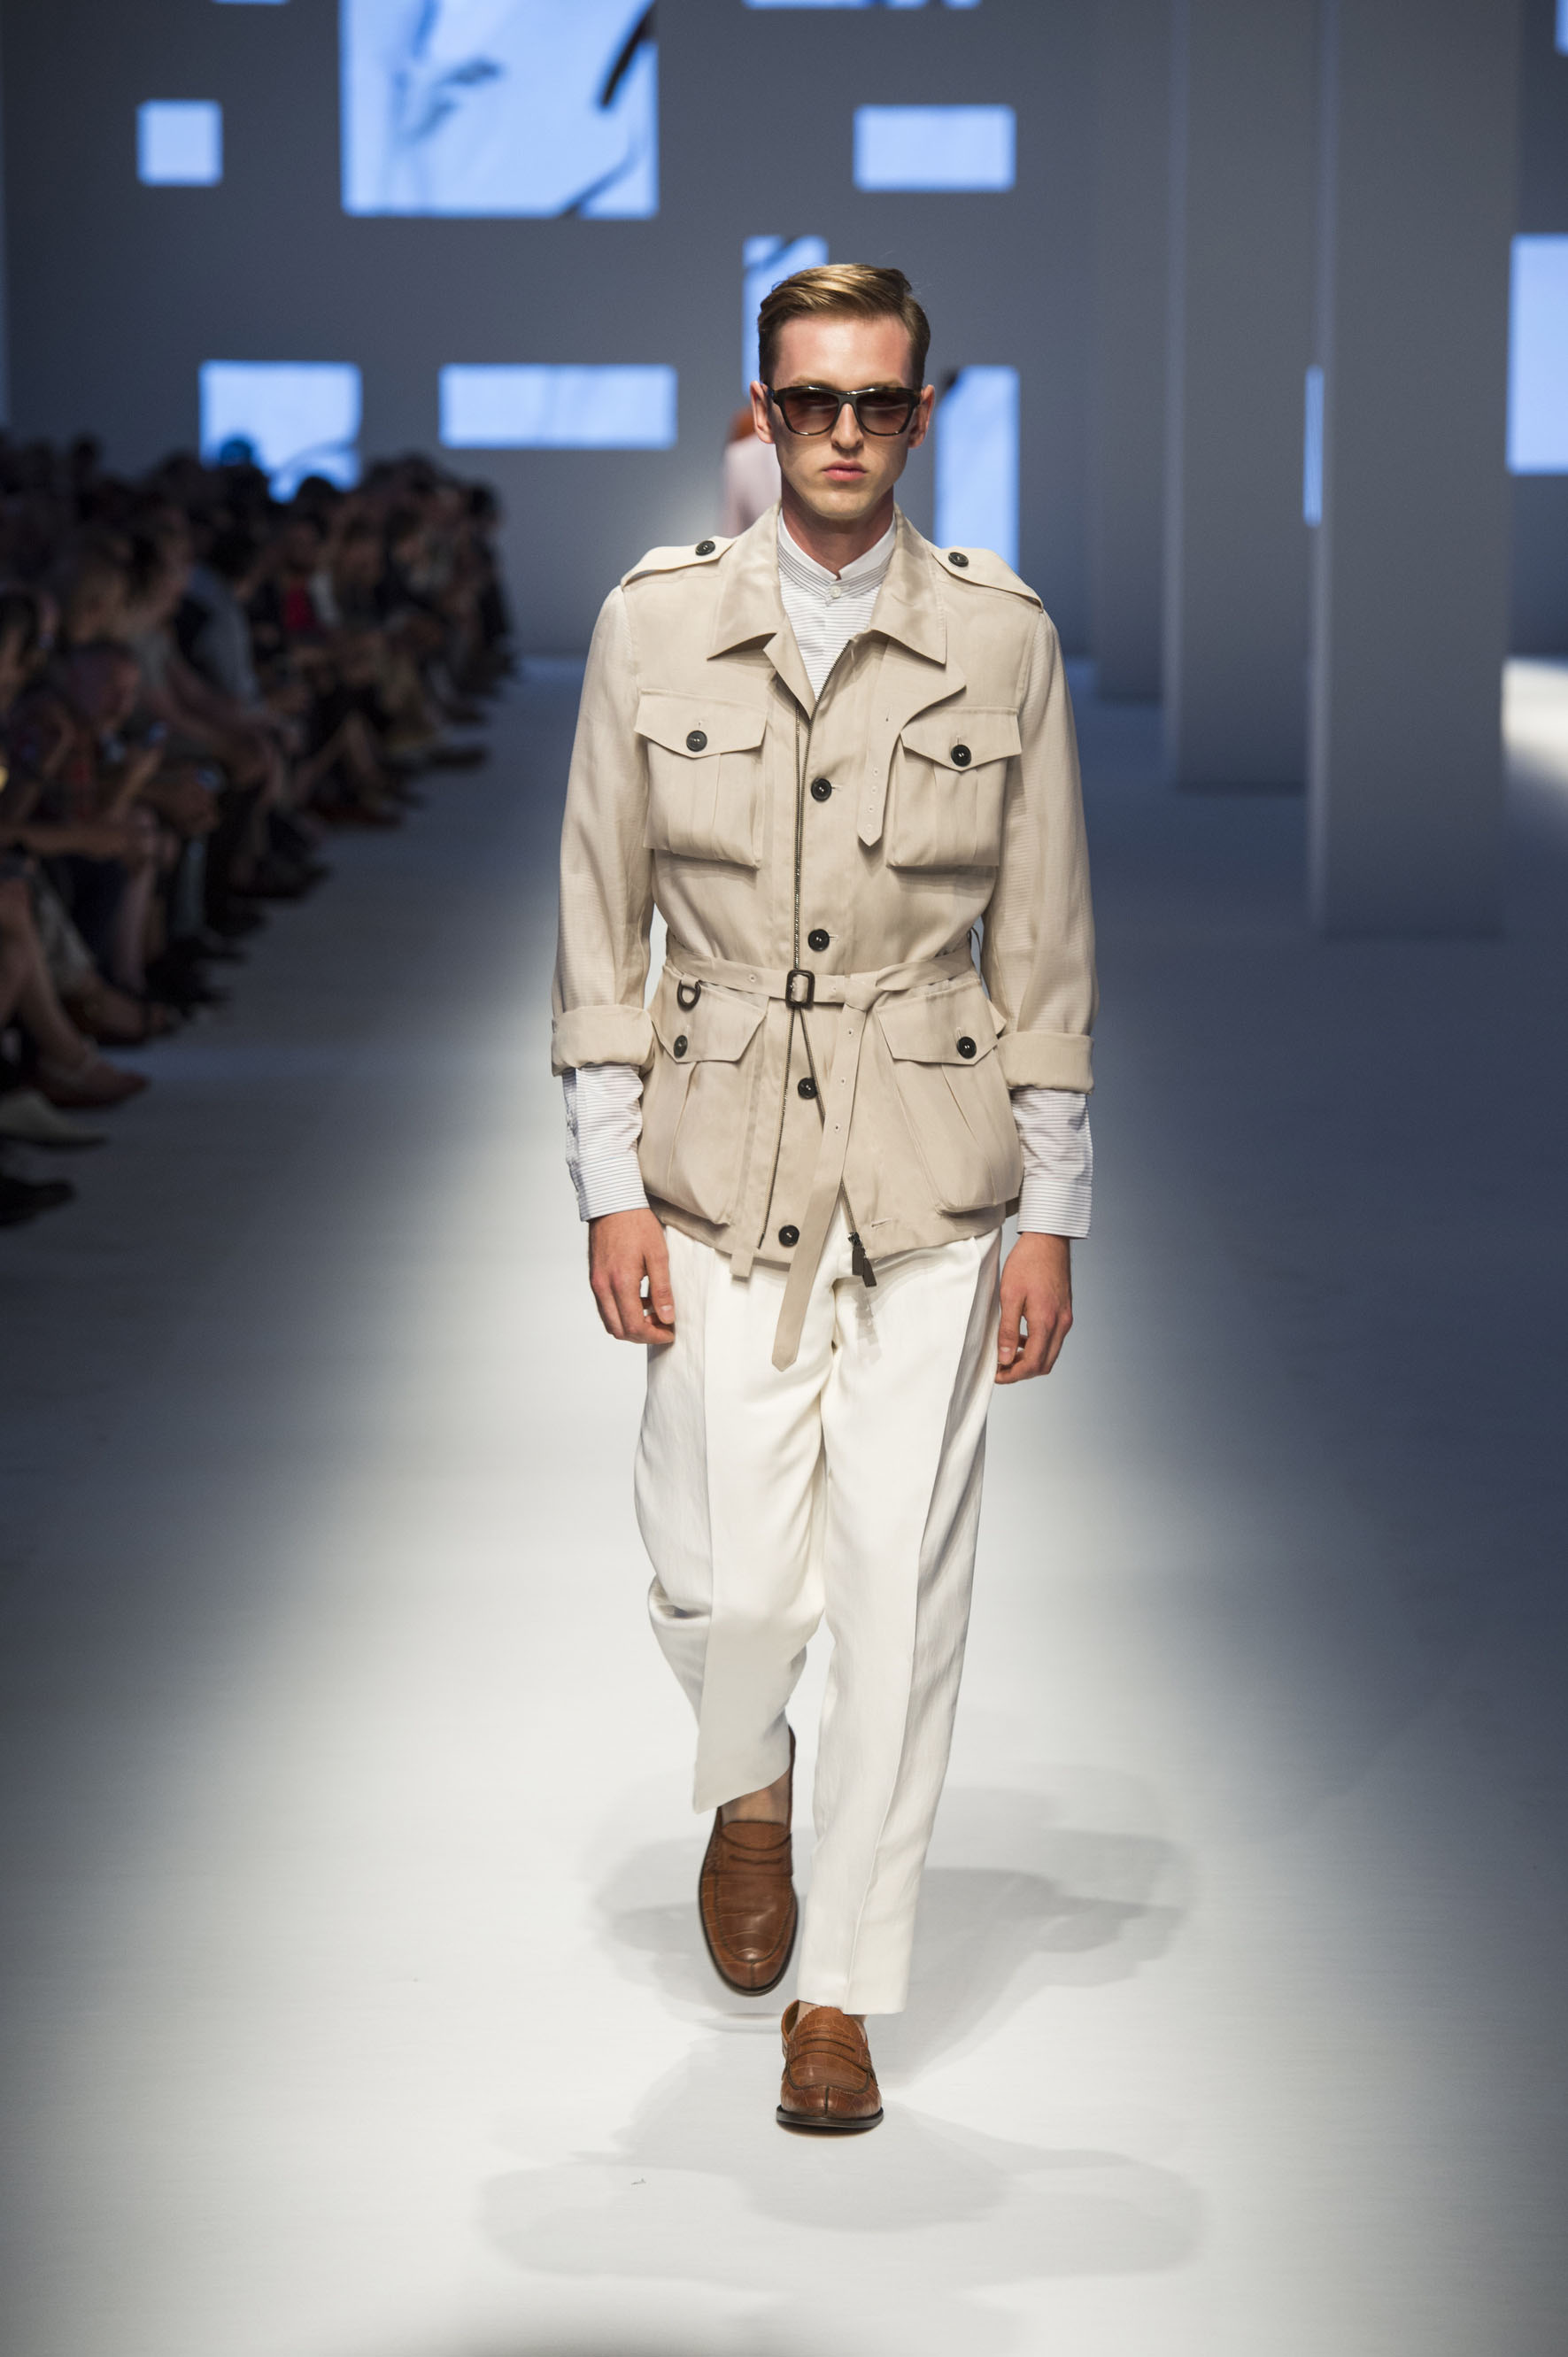 Pure silk field jacket with applied pockets, reverse-pleated pants, double-layer dress shirt, crocodile espadrilles